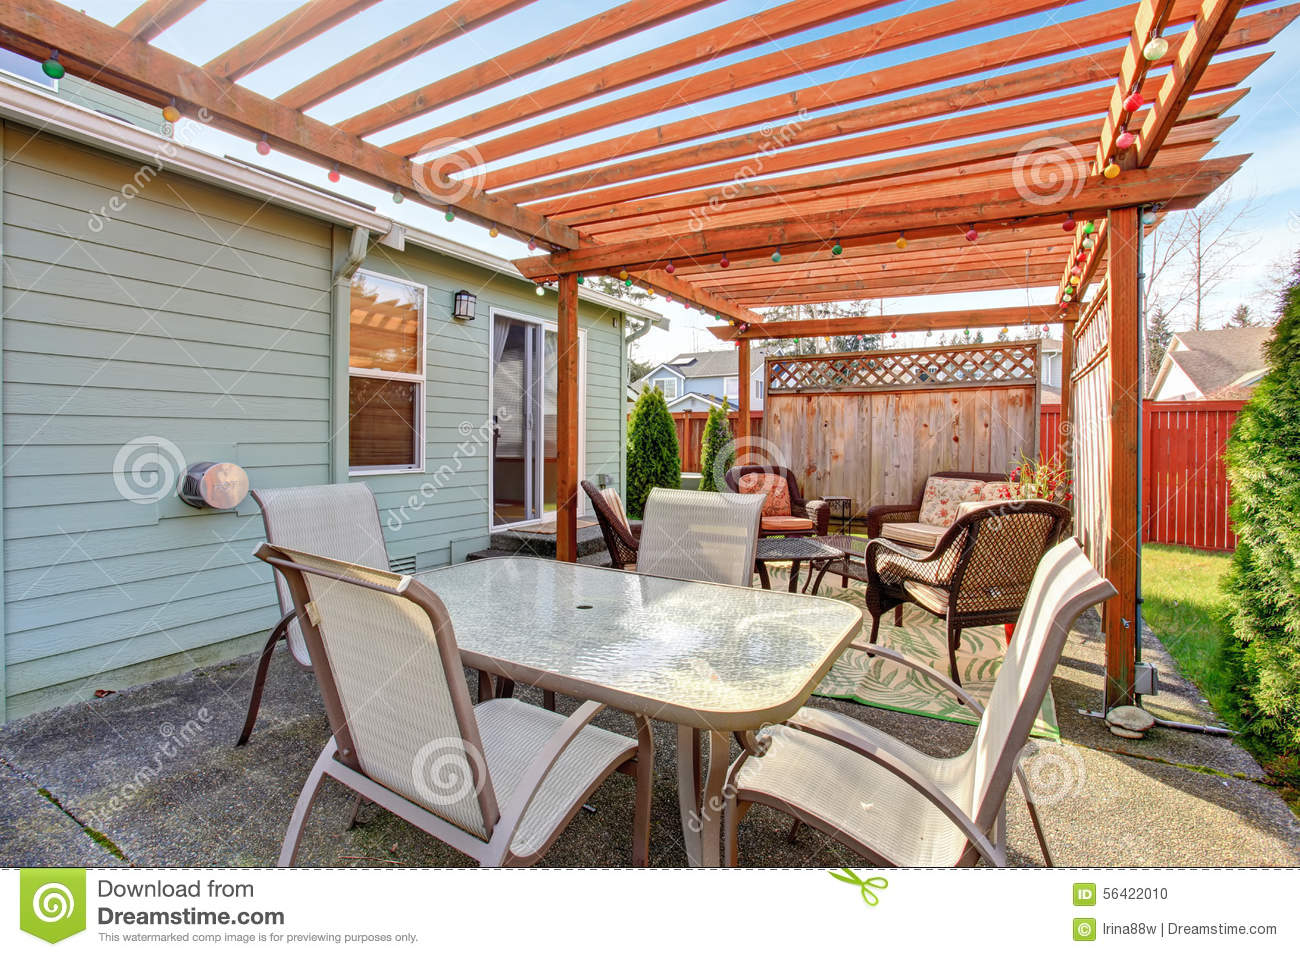 Perfect Back Yard Including Furnished Patio With Jacuzzi Tub.